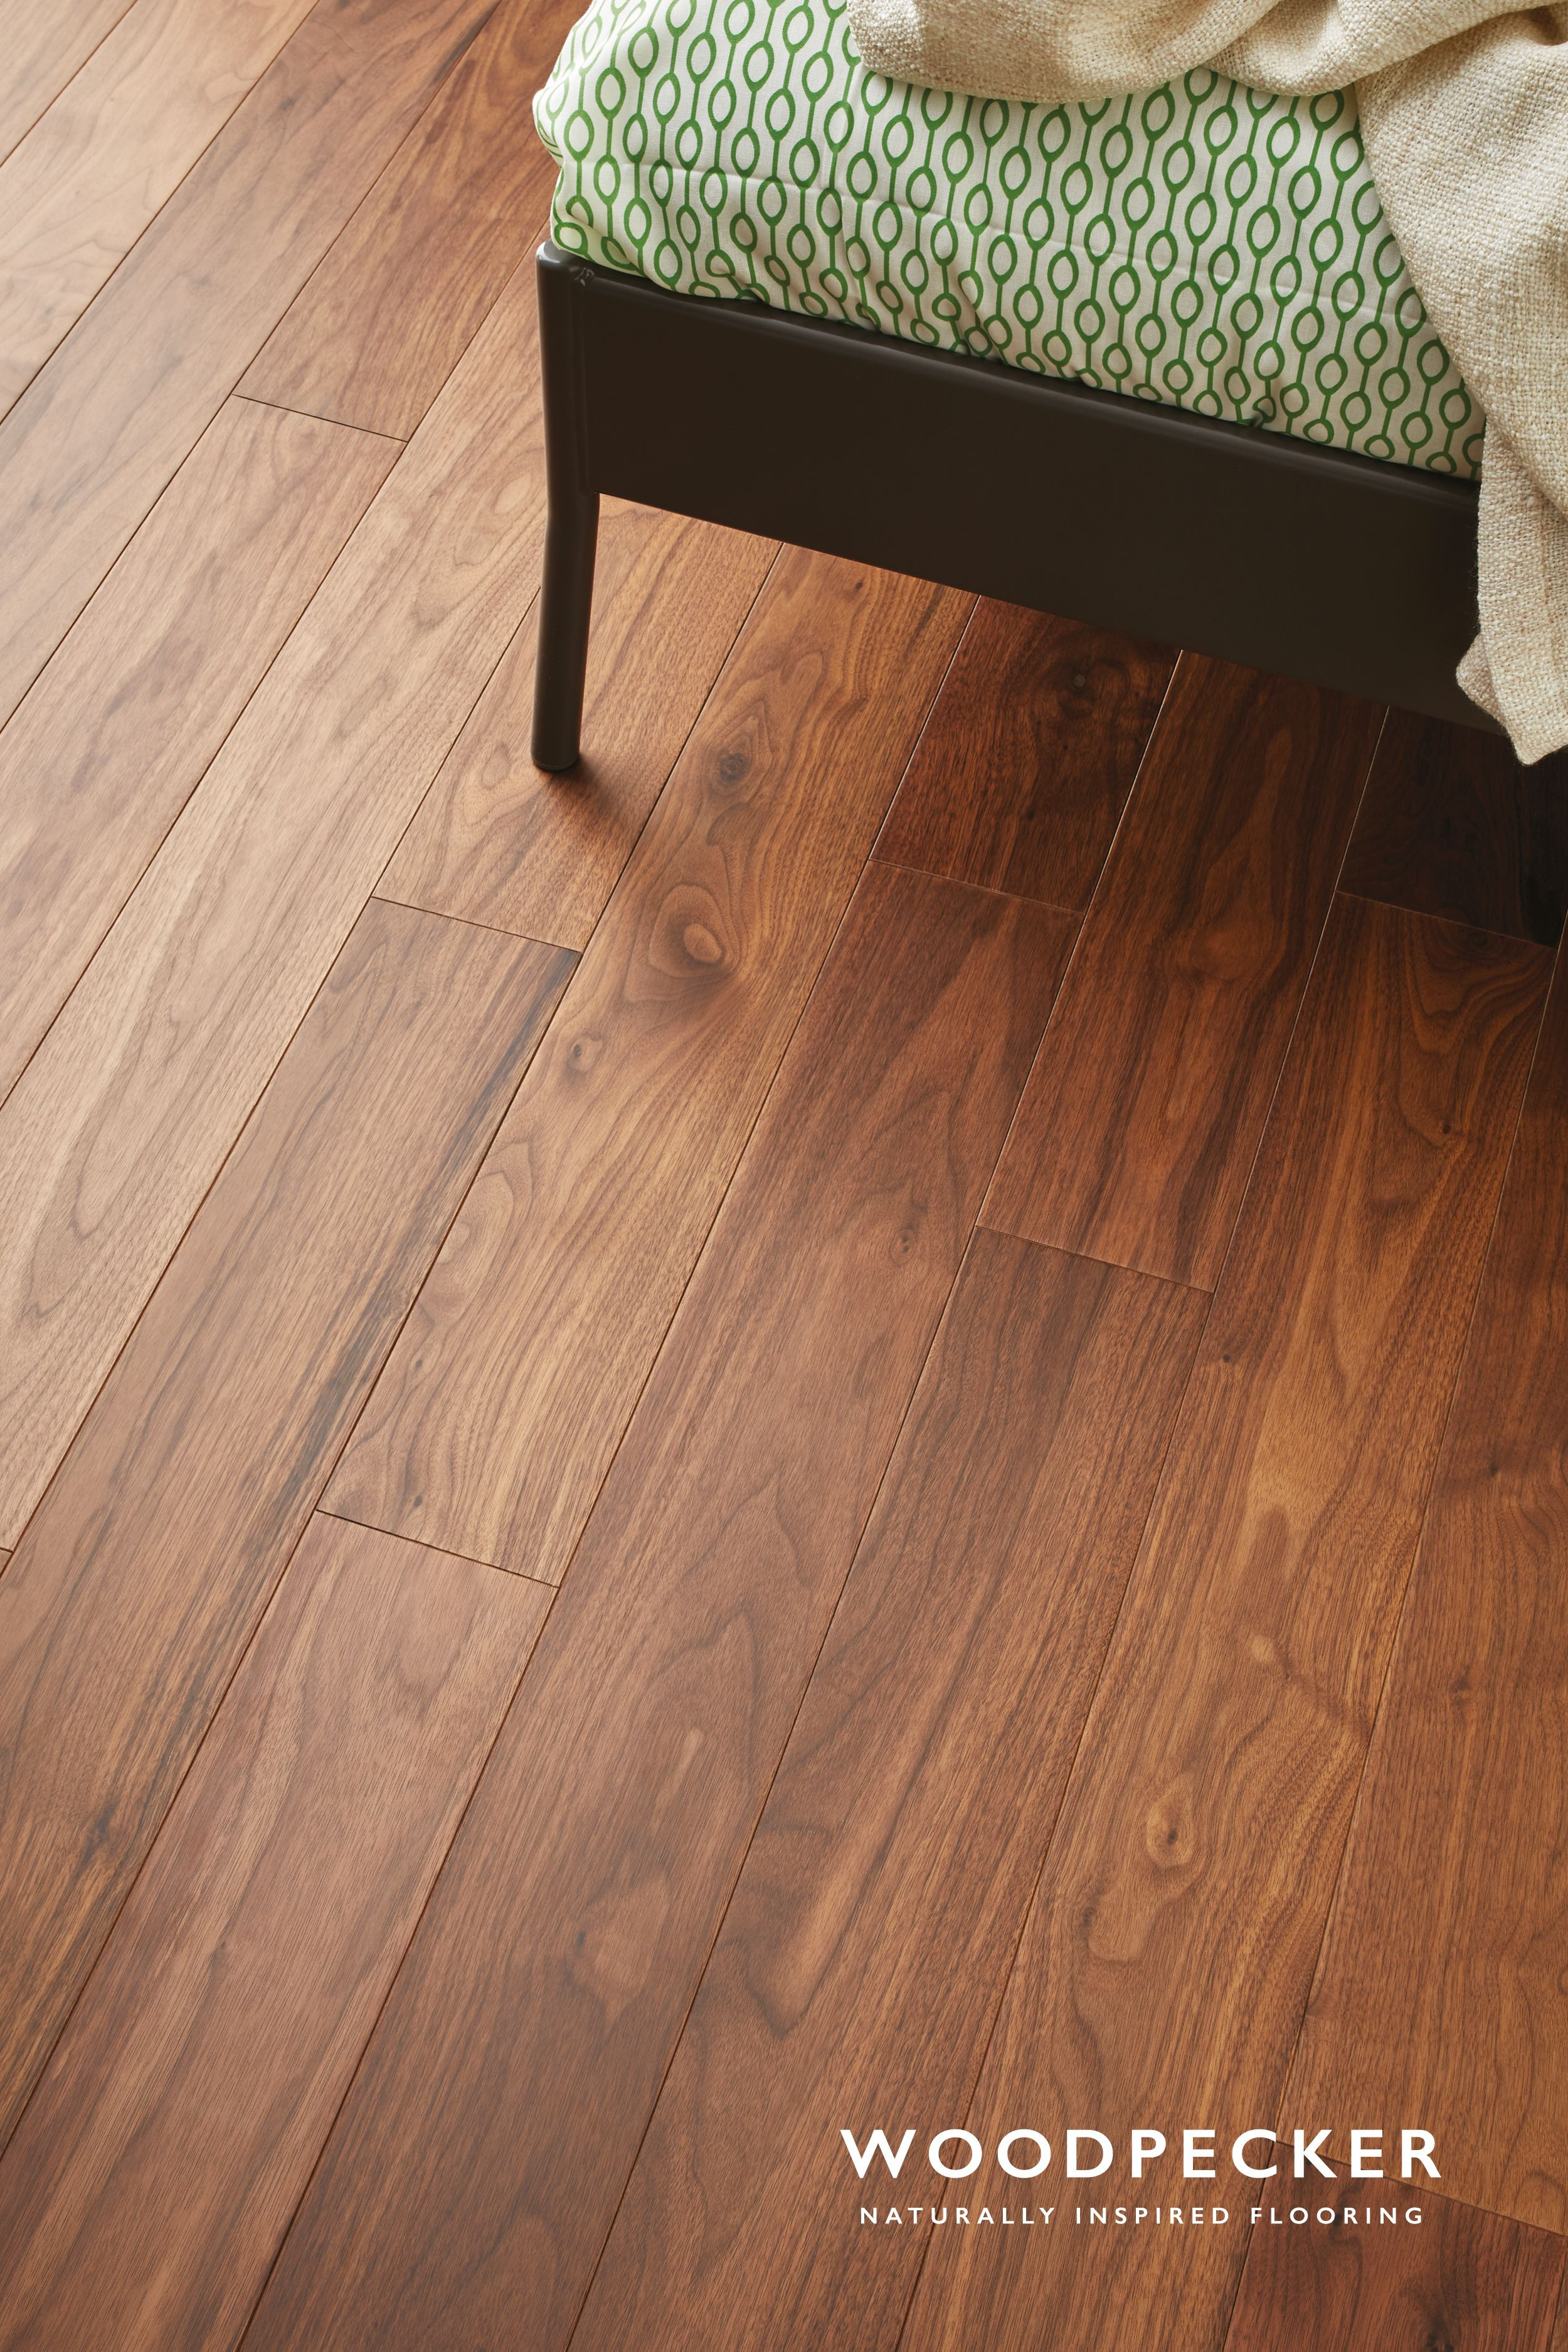 discount engineered hardwood flooring prices of raglan walnut exotic engineered wood and wood flooring pertaining to walnut flooring is exotic and exciting with wide flowing grain patterns and a medley chocolate